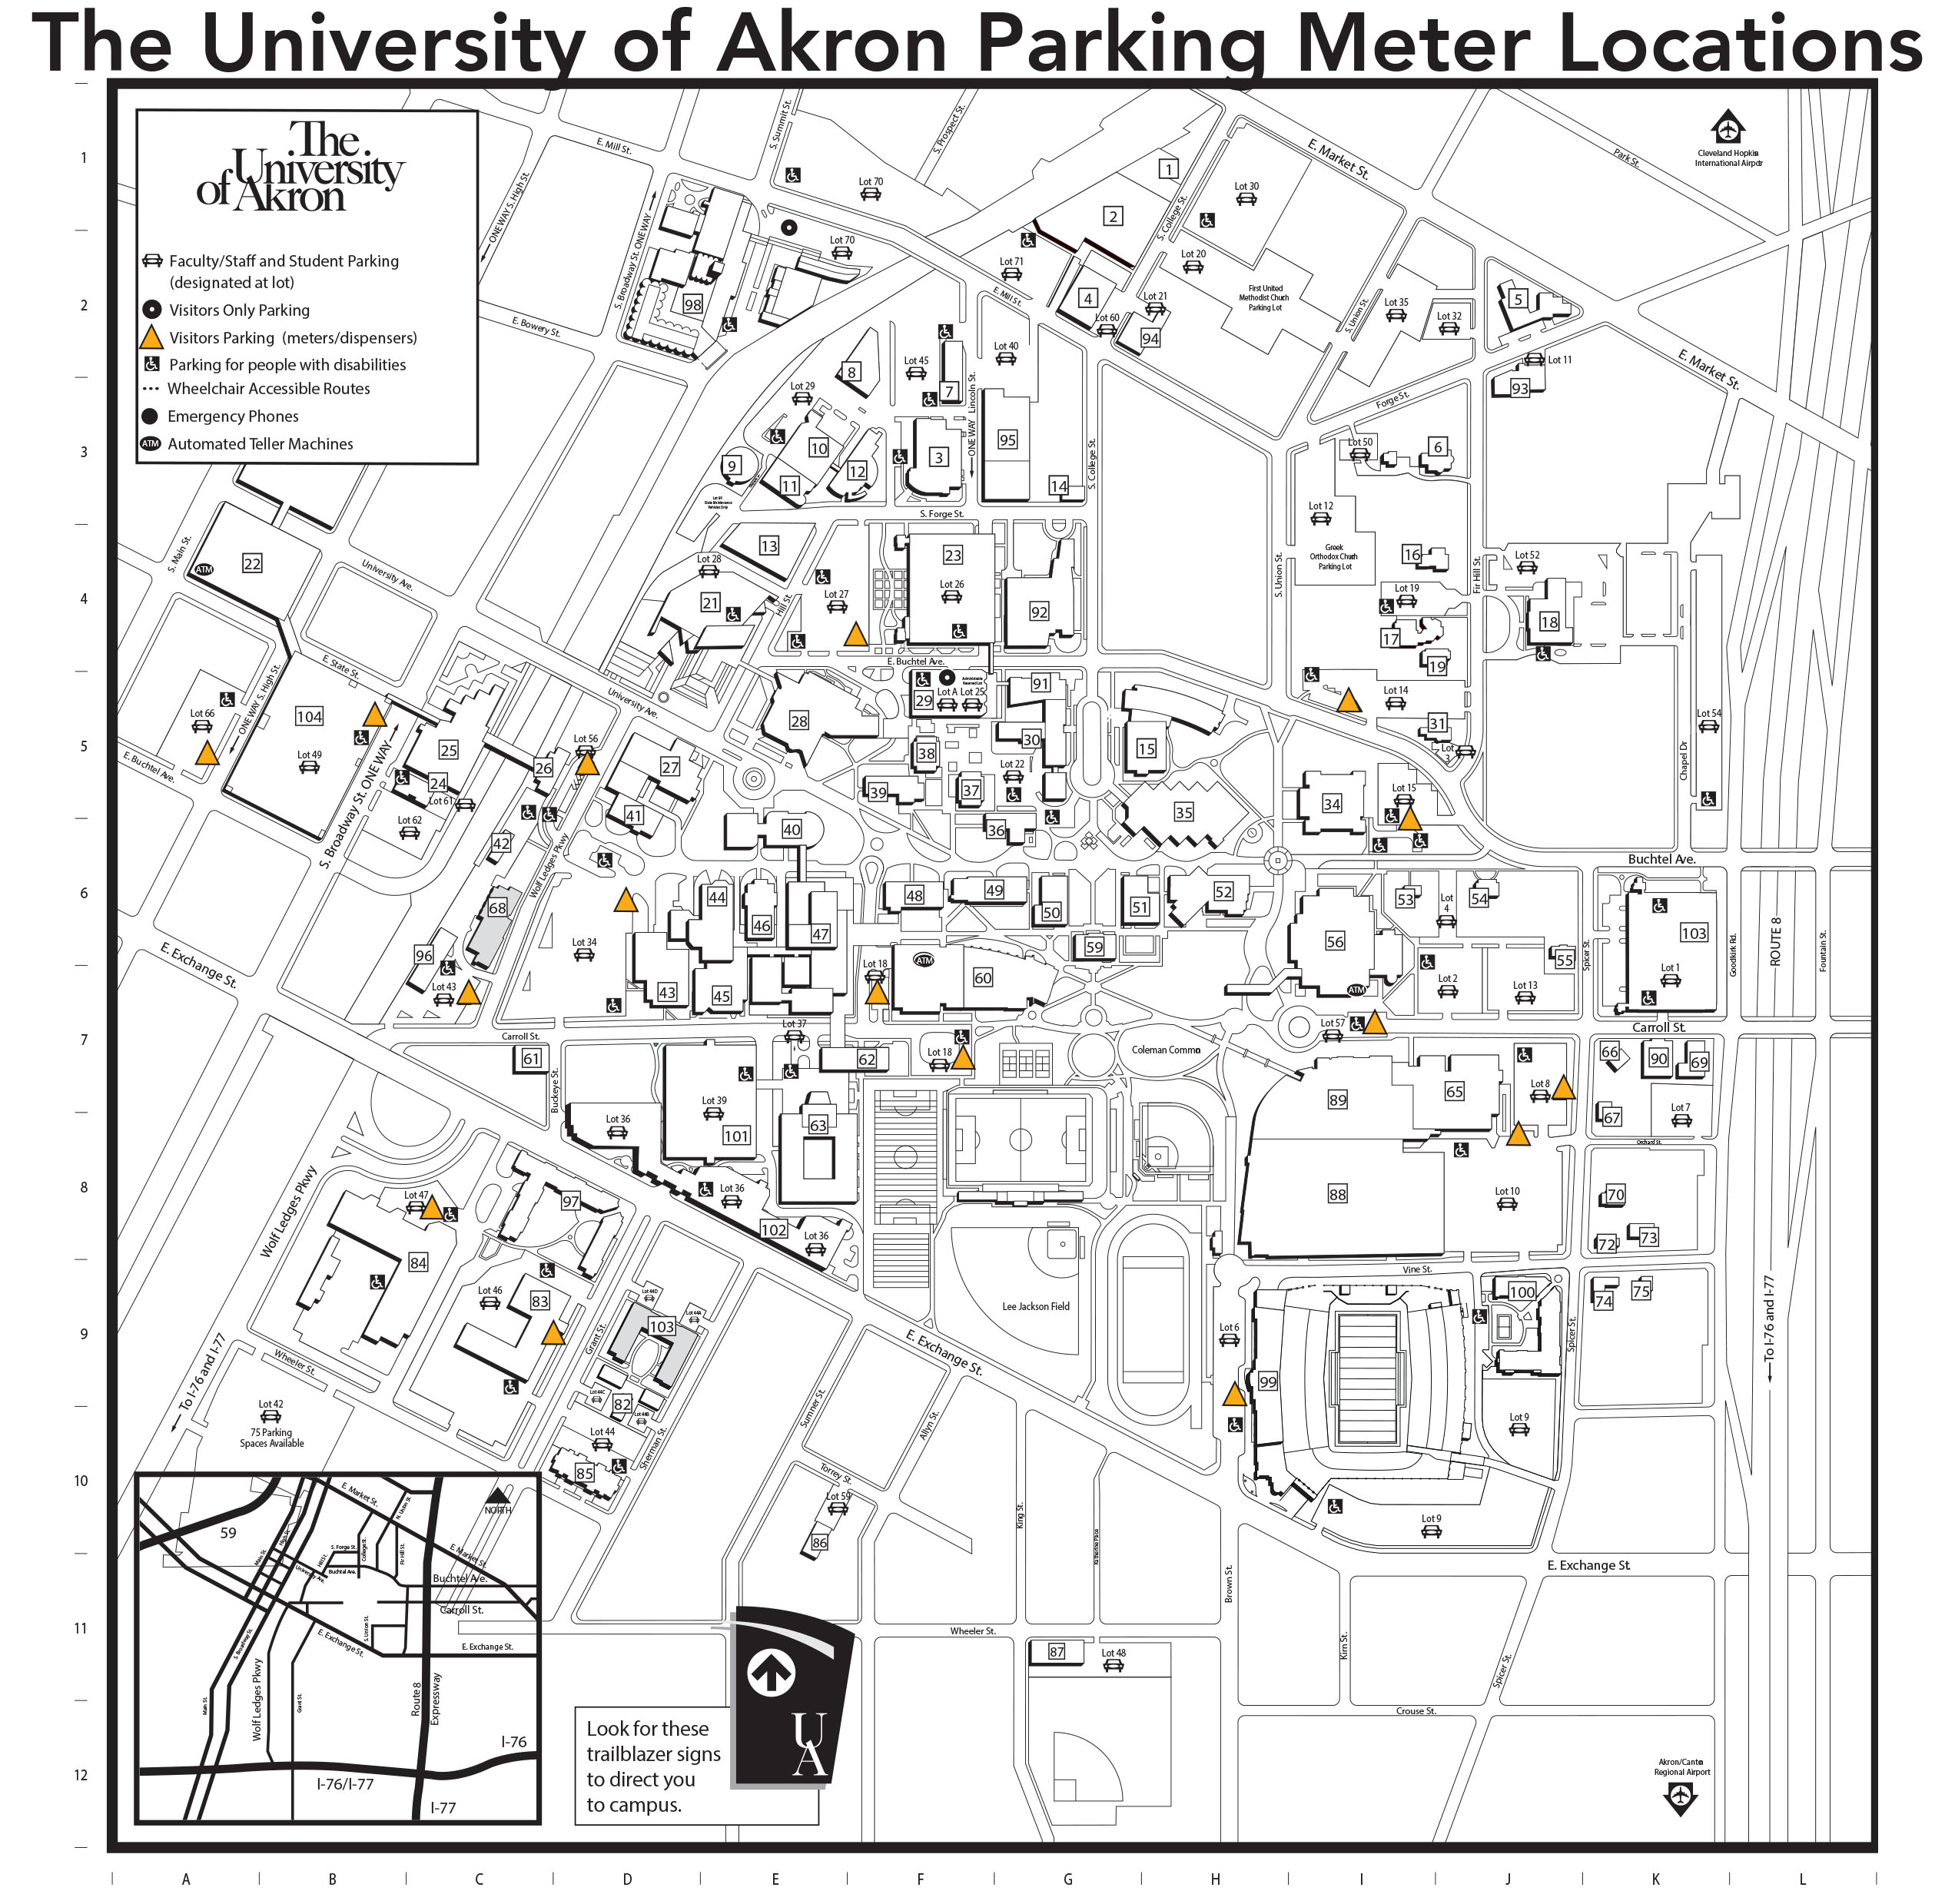 Parking Meter location map